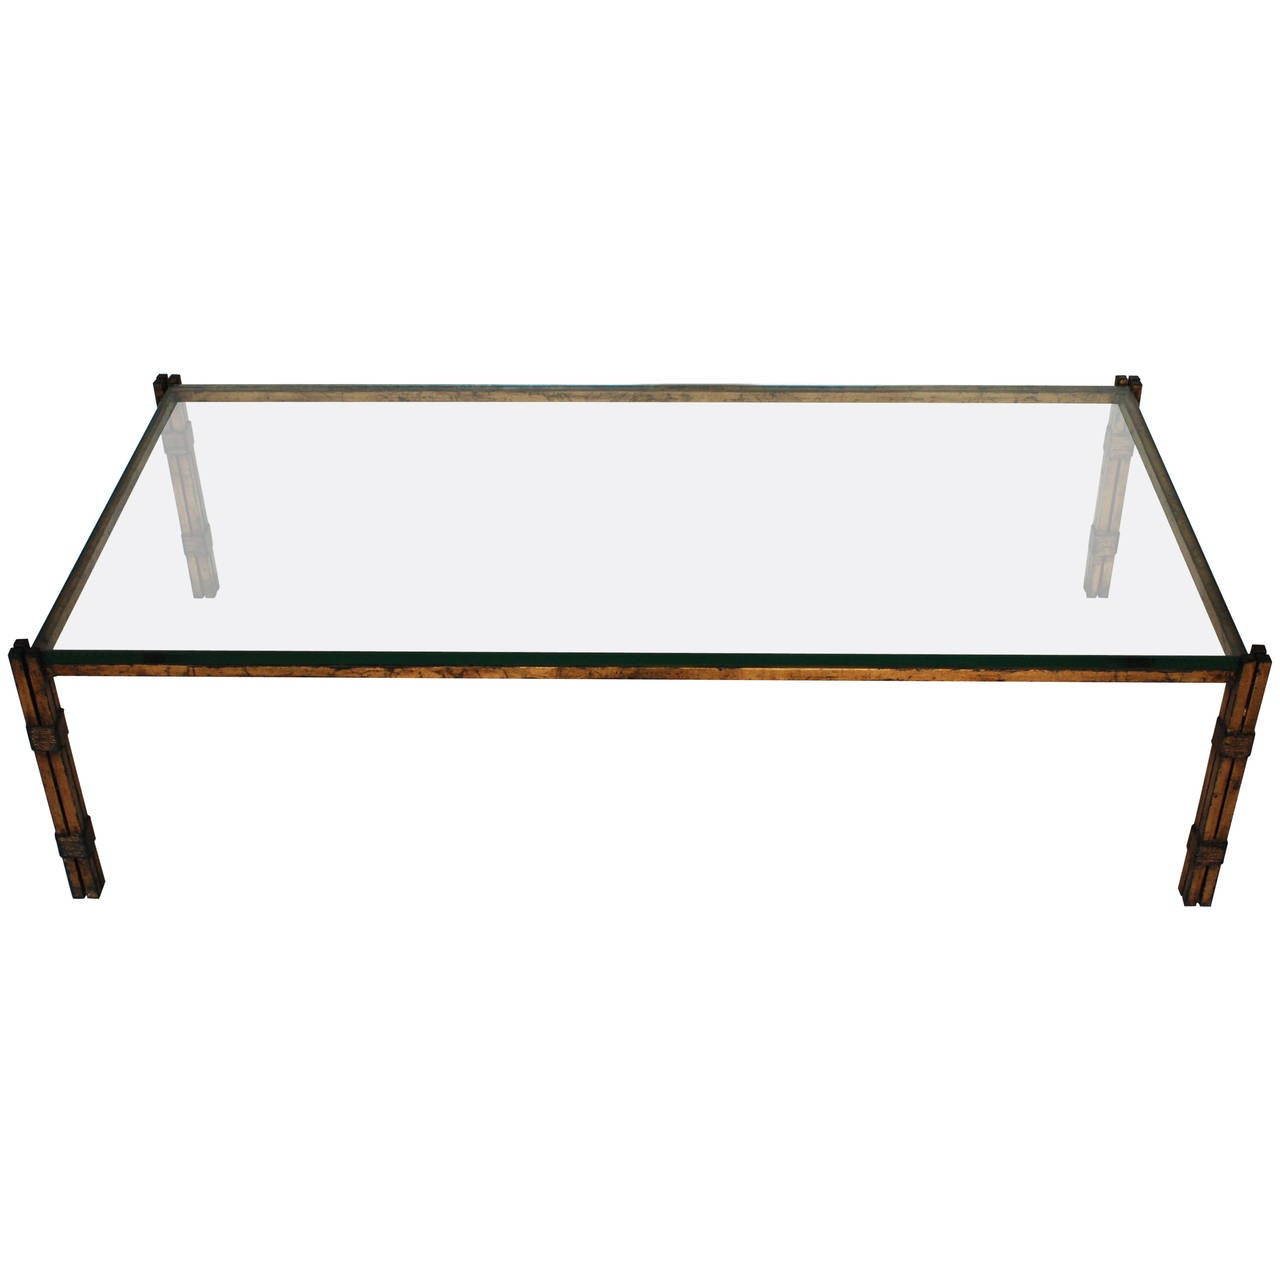 Mexican Modern Gilt Rectangular Coffee Table Attributed to Arturo Pani